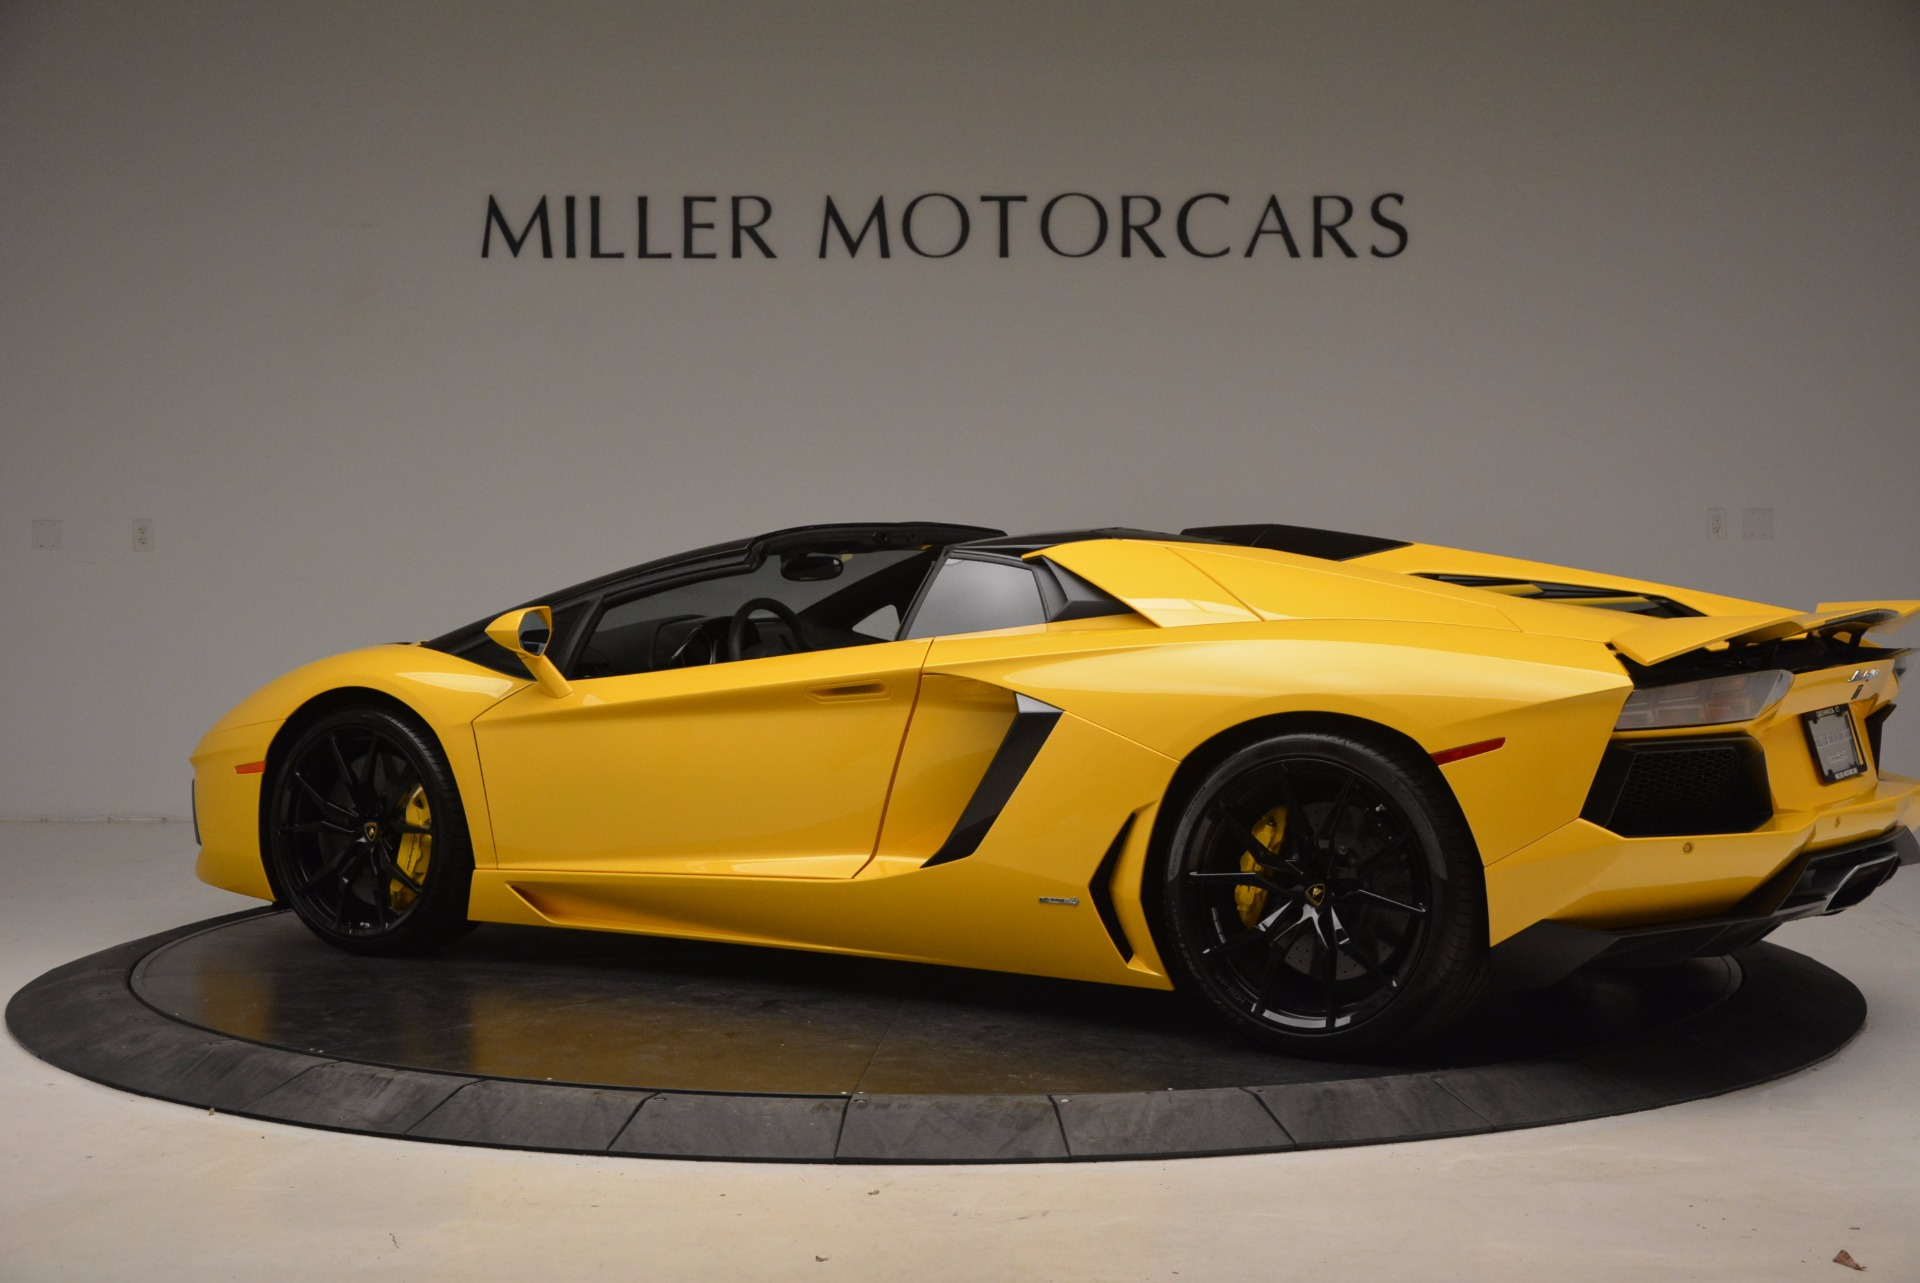 Used 2015 Lamborghini Aventador LP 700-4 Roadster For Sale In Westport, CT 1774_p4